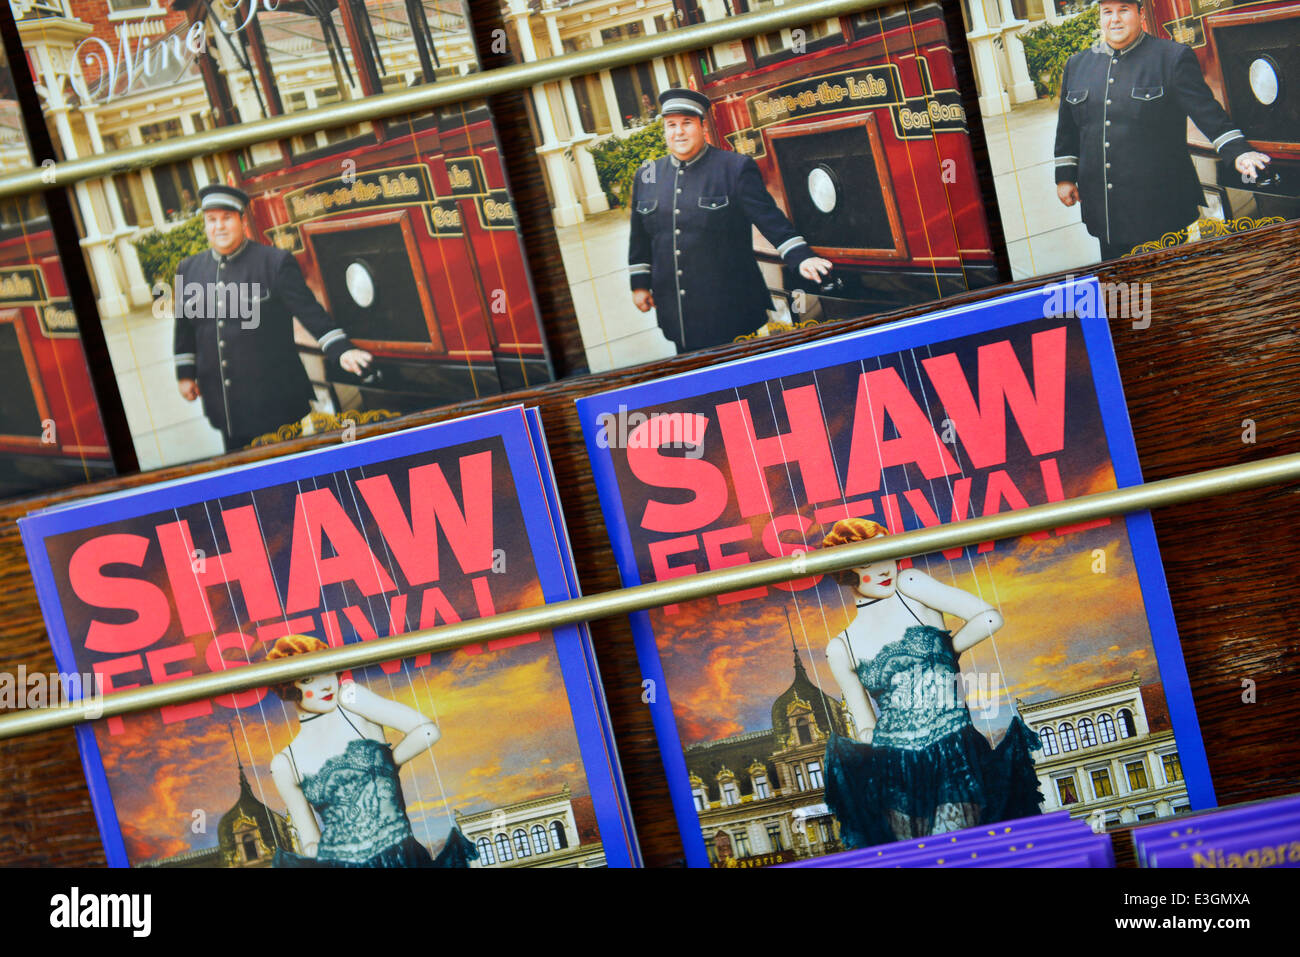 Shaw Festival Guides, Booklets, Niagara-on-the-Lake, Ontario, Canada - Stock Image